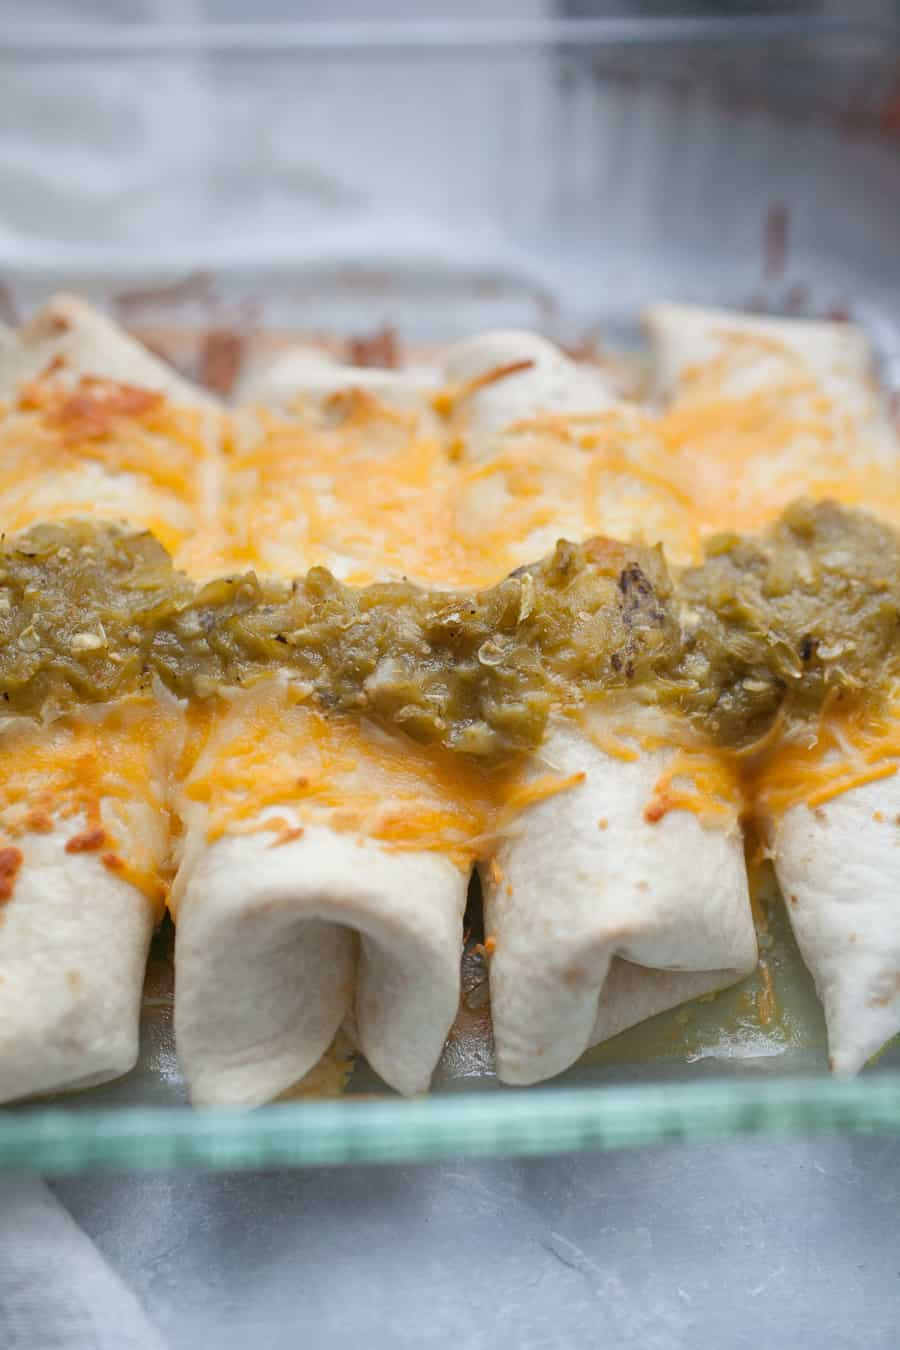 Sour Cream Chicken Enchiladas are the perfect weeknight dinner that will gather your family around the table. These enchiladas are made with flour tortillas, instead of traditionally used corn tortillas, and are stuffed with shredded chicken mixed with cream of chicken soup, sour cream, and cheese. The whole dish is topped with cheese and spicy green chile sauce! It's packed with flavor and the perfect dish for your family!